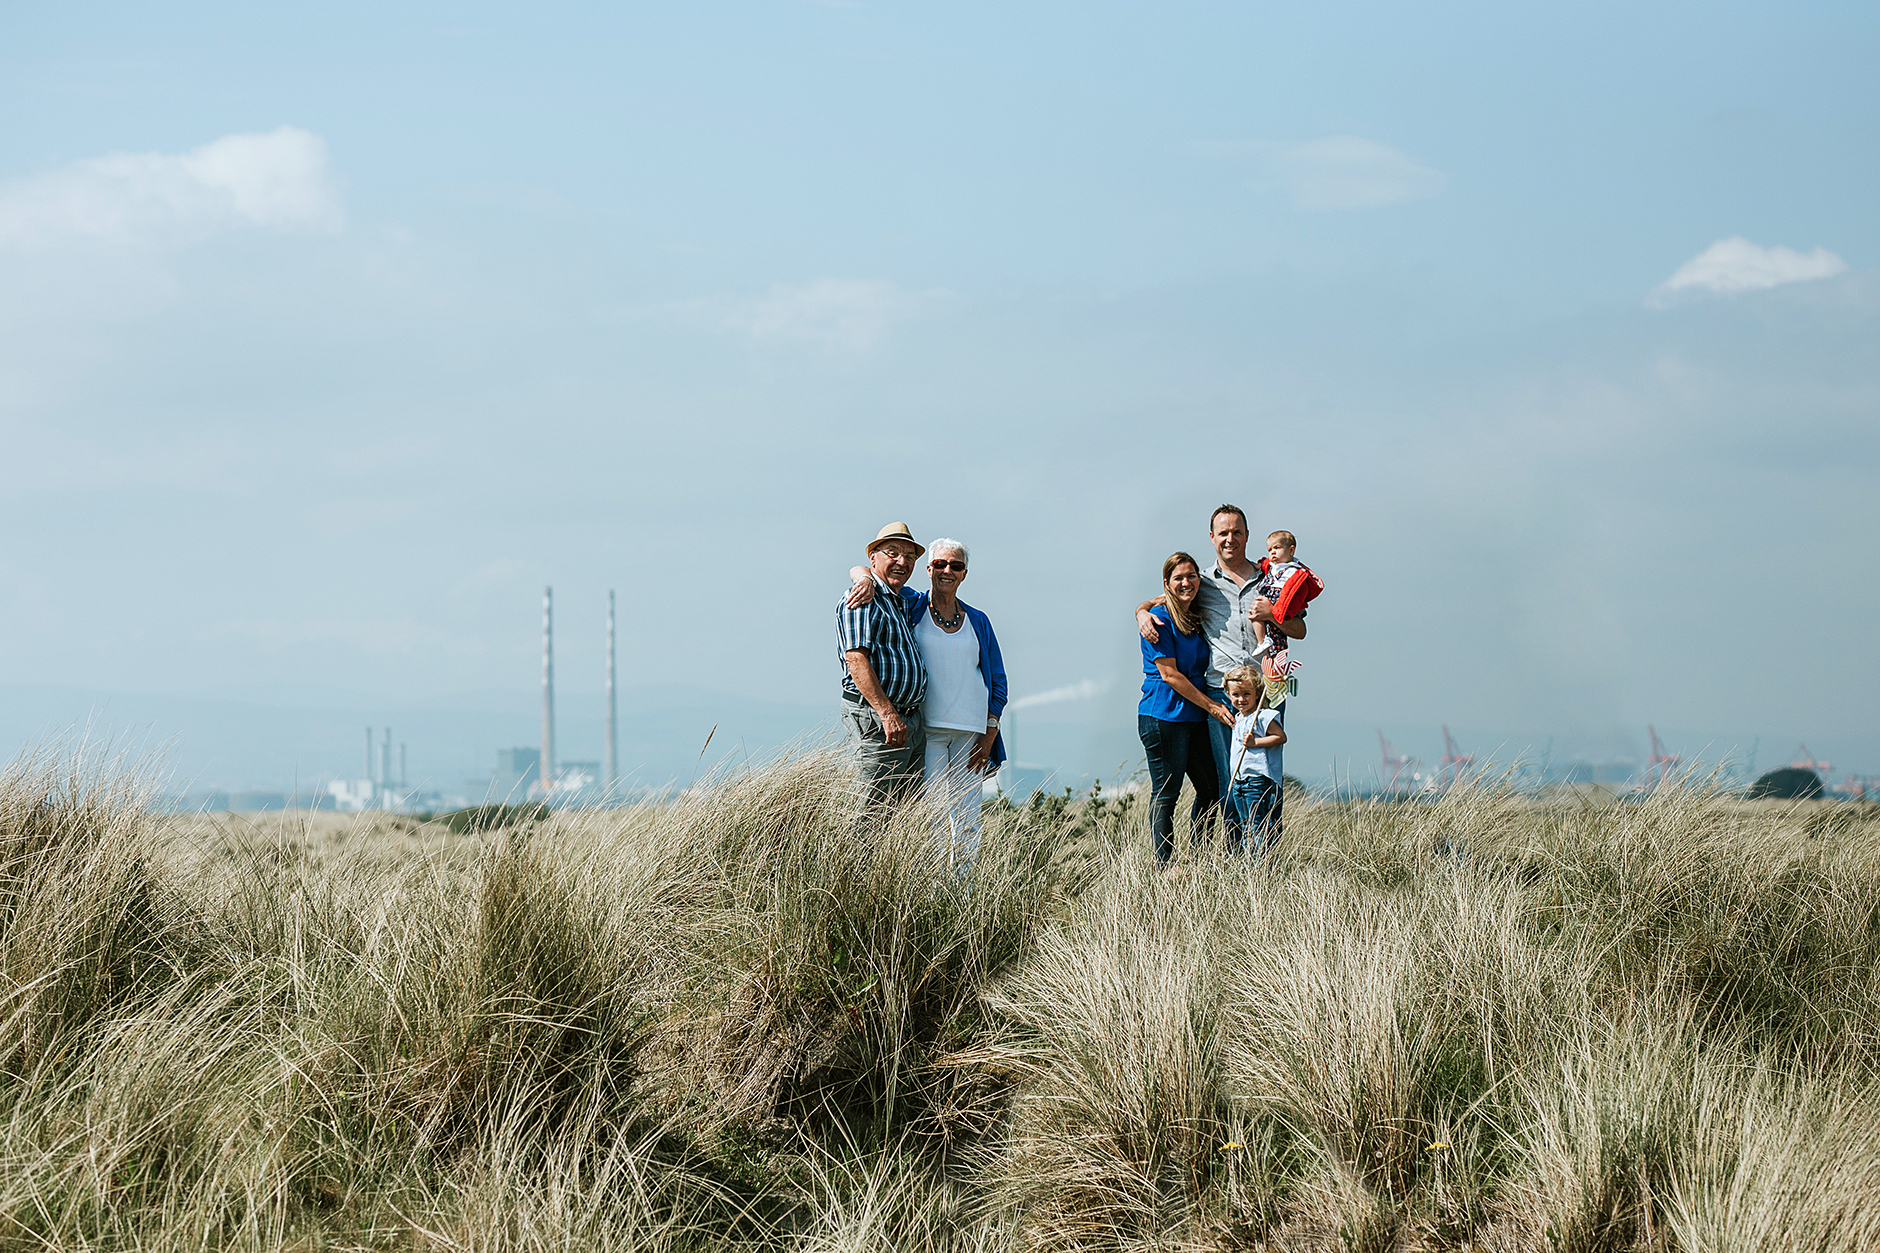 Three generations of one family posing for a family portrait in Bull Island sand dunes in Dublin: grandparents, parents and two granddaughters.